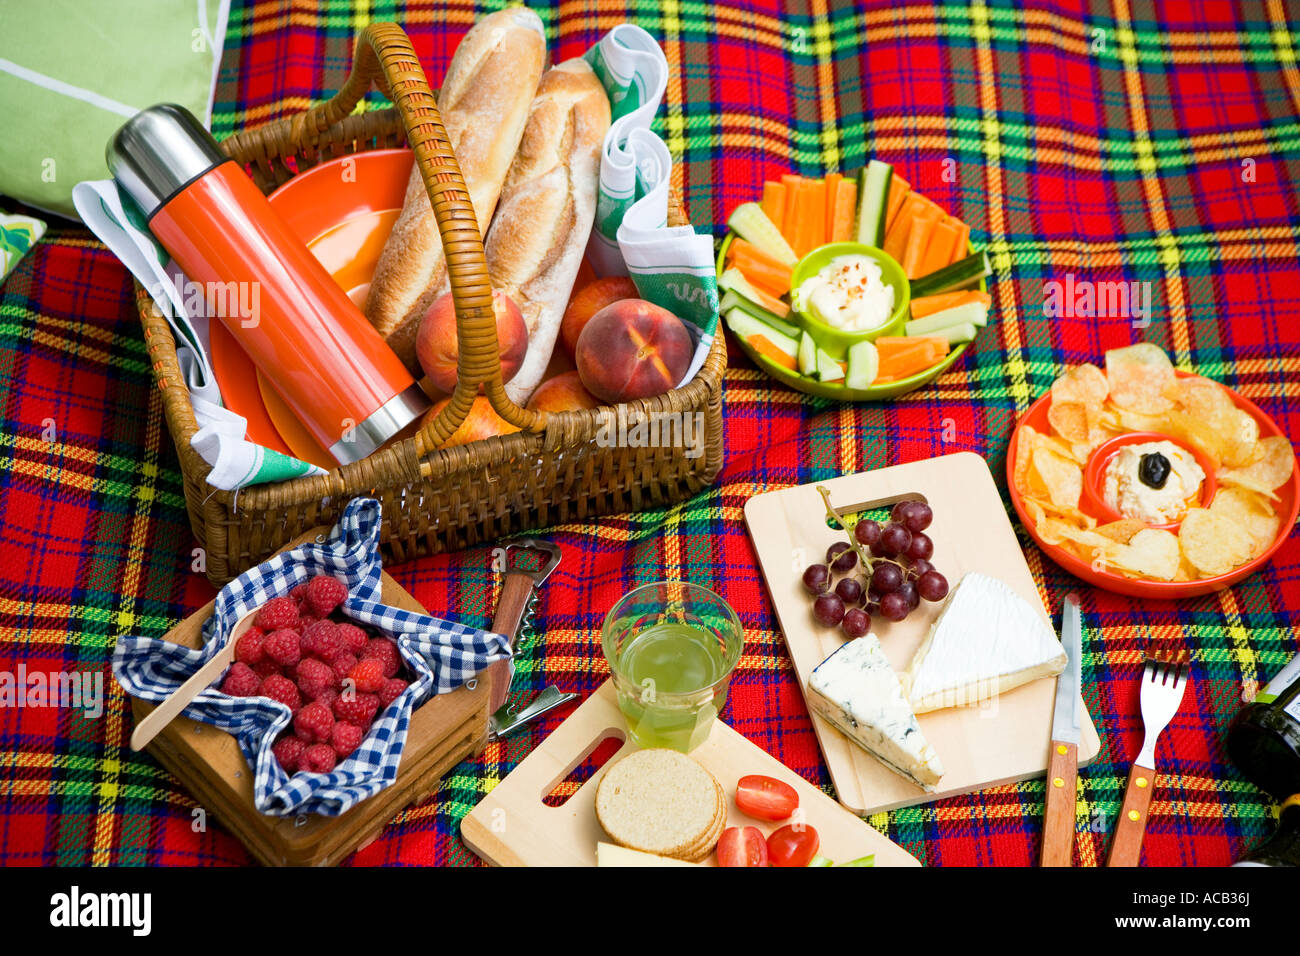 Picnic food - Stock Image